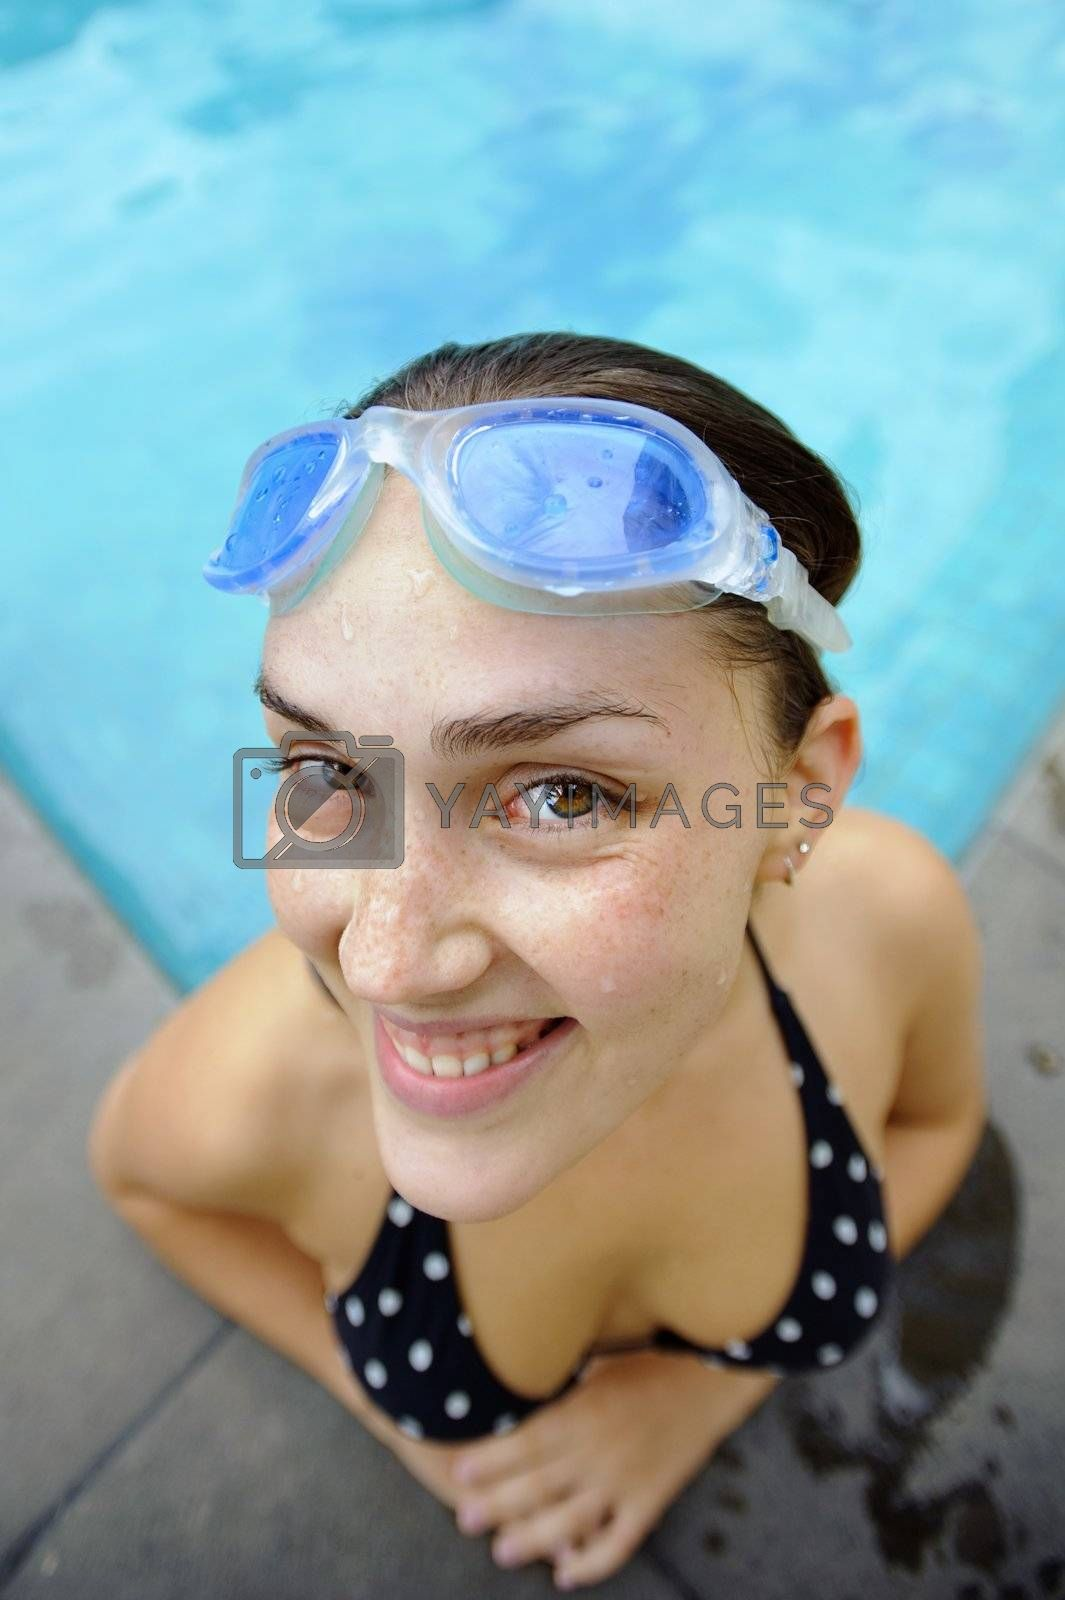 Female smiles with goggles on her head